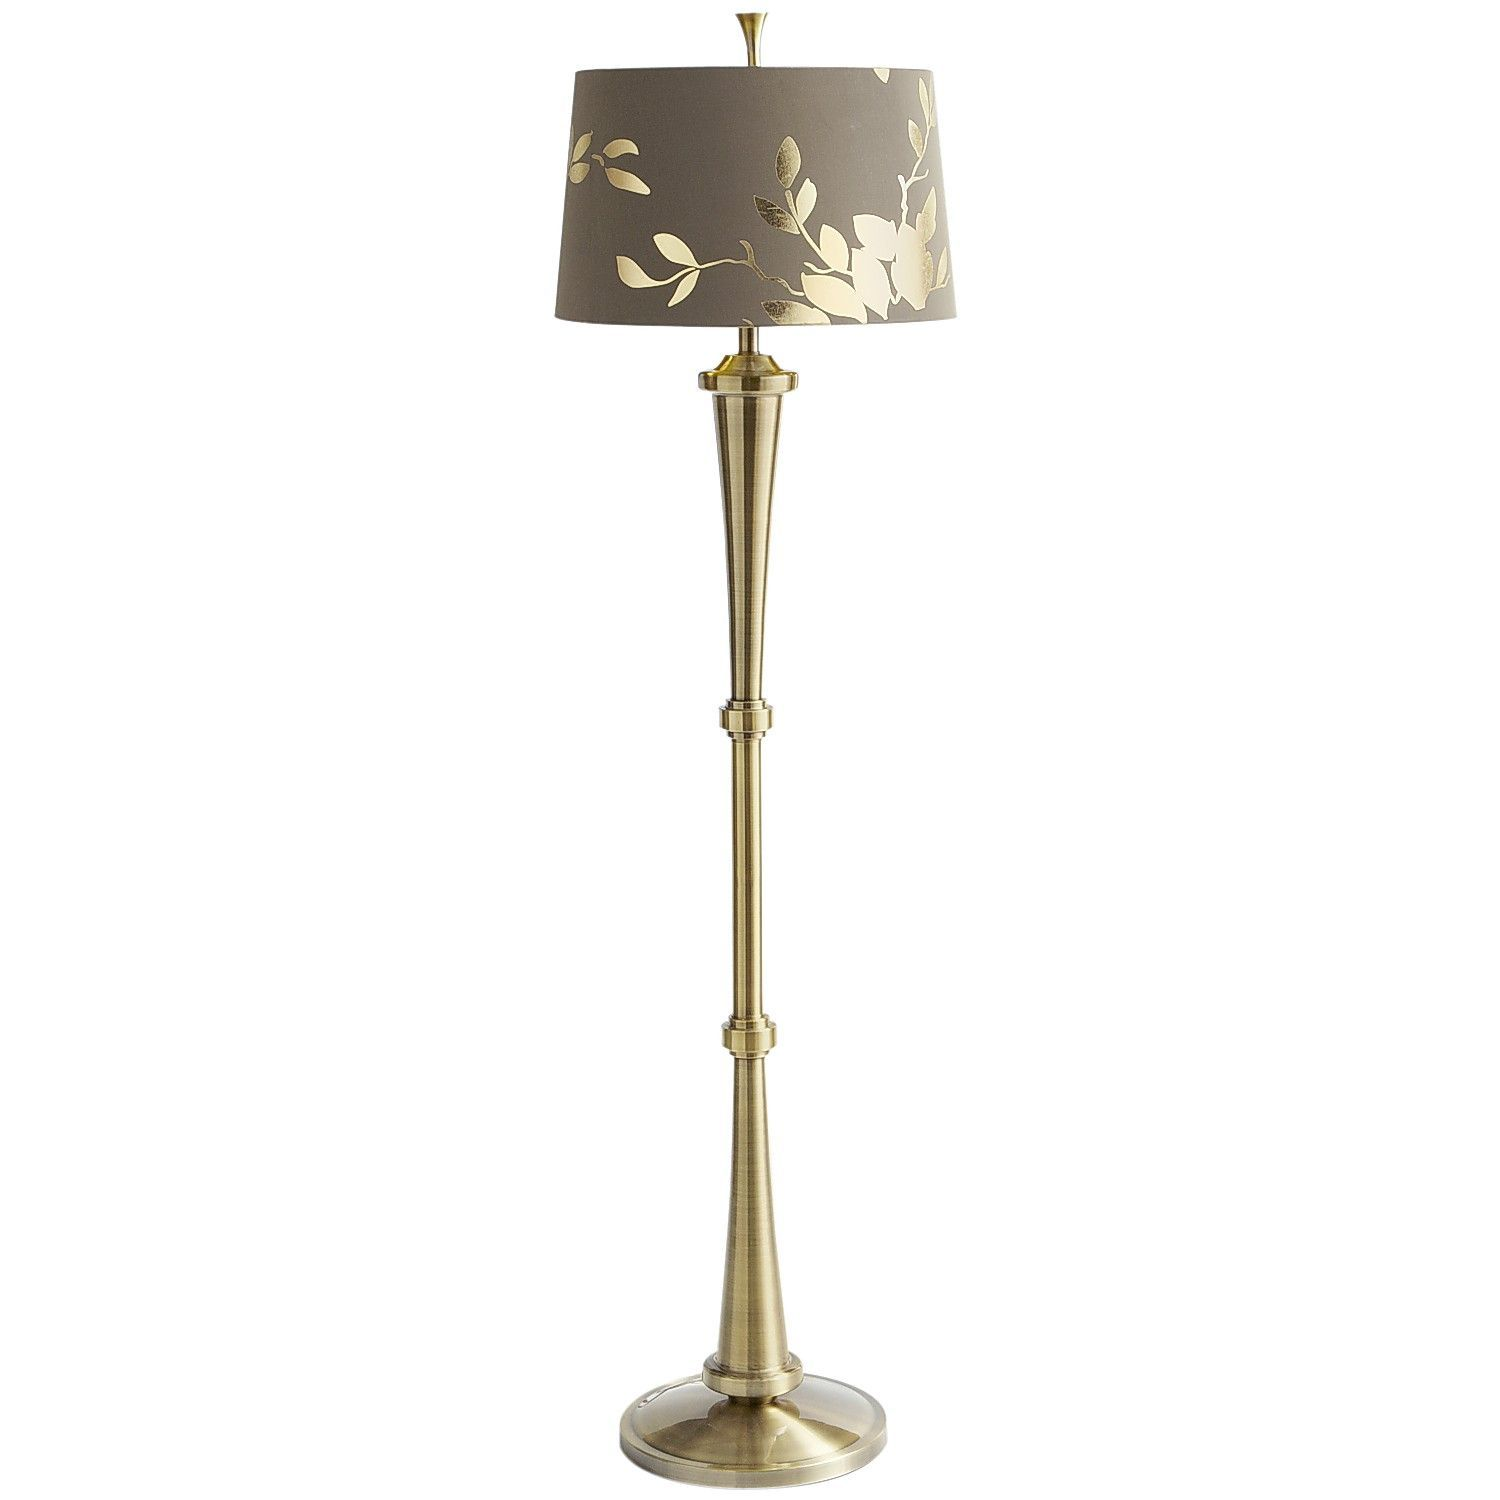 Pier 1 Floor Lamps Impressive Gold Leaf Floor Lamp Inspiration Design